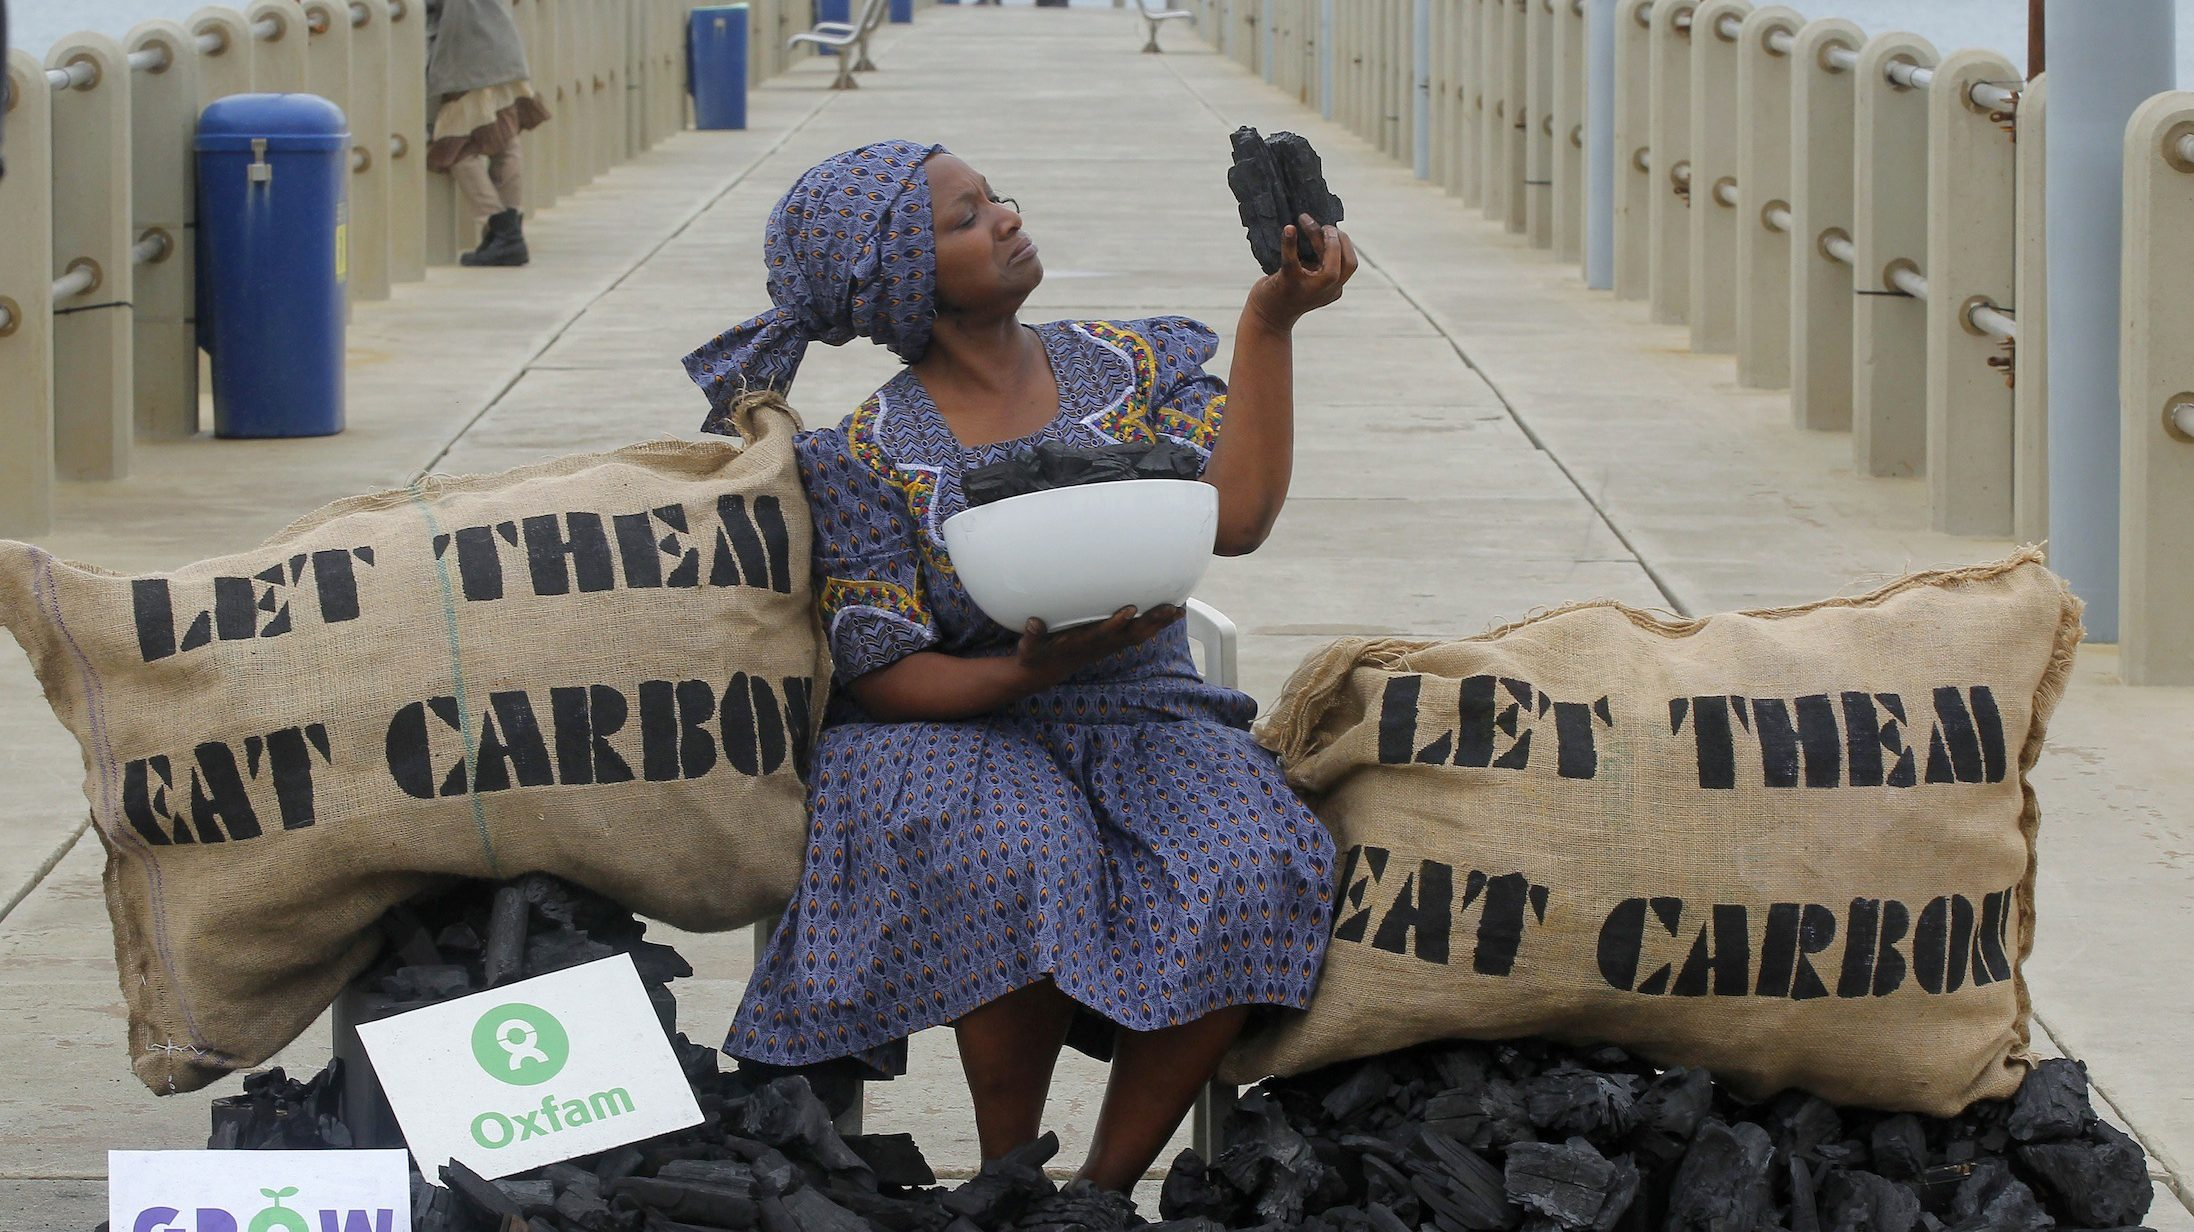 Busi Ndlovu, a member of the aid group OXFAM, stages a protest against the use of coal-based energy on Durban's beachfront